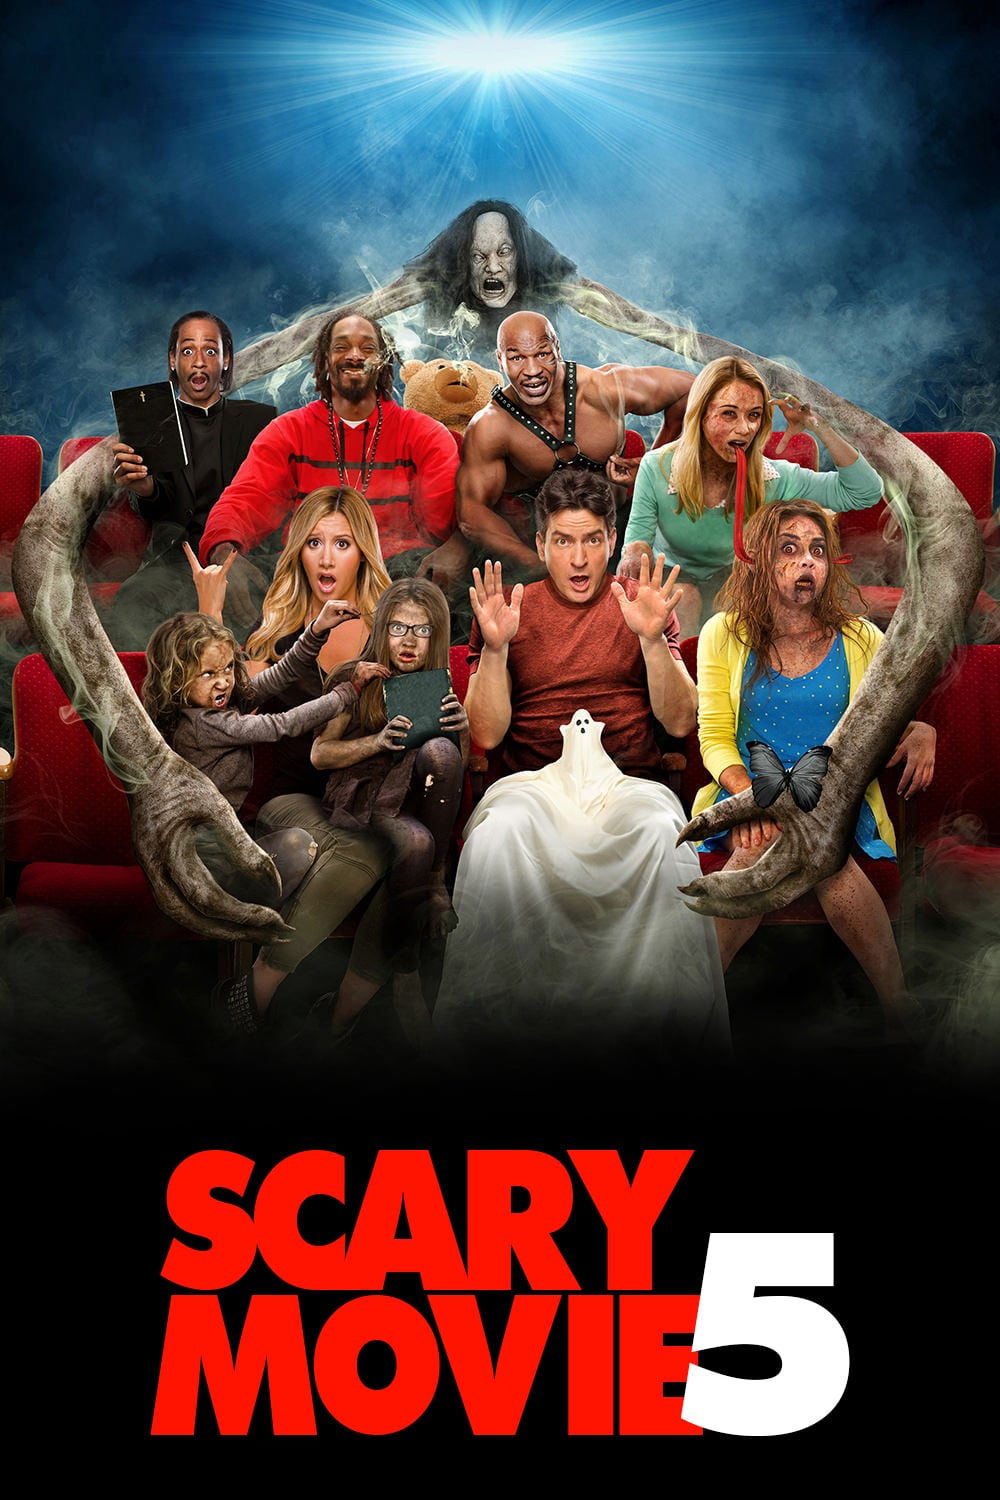 Scary Movie 5 Movie Streaming Online Watch on Google Play, Youtube